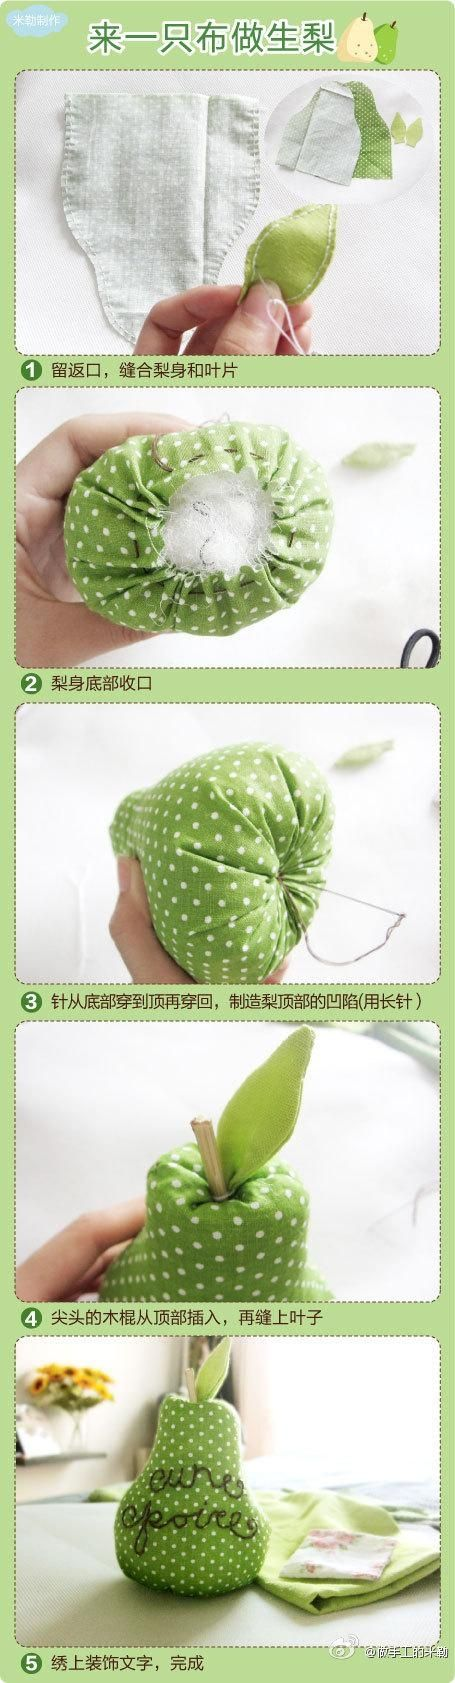 diy pear pin cushion might be a good decoration for the girl's very hungry caterpillar party!